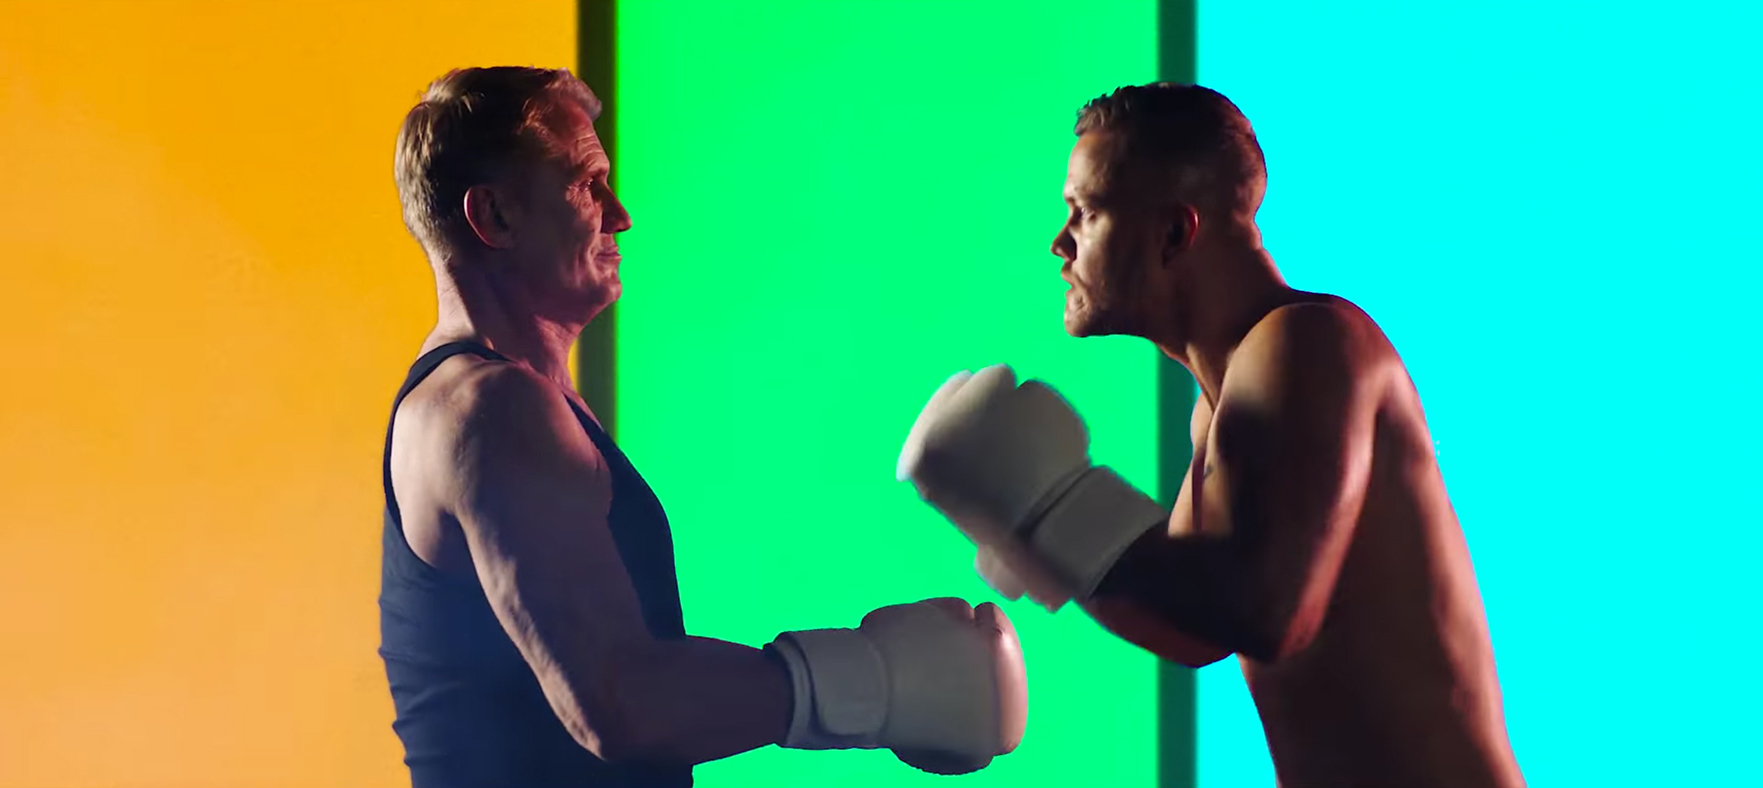 Watch Imagine Dragons' Violent 'Believer' Video Starring Dolph